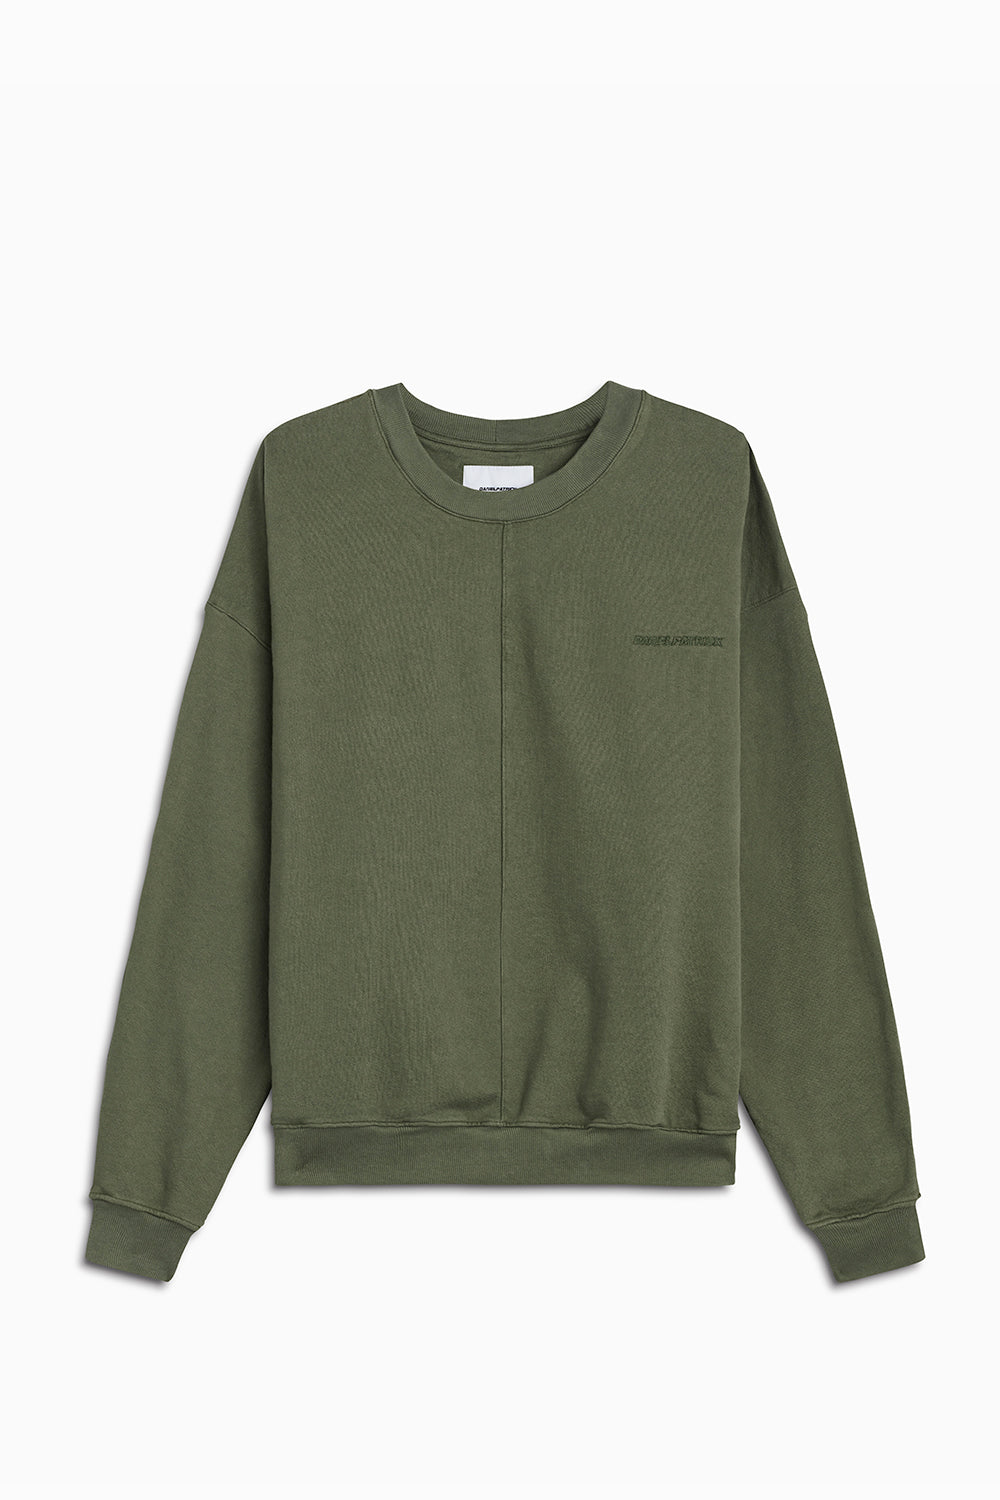 pullover crew neck sweatshirt / washed olive